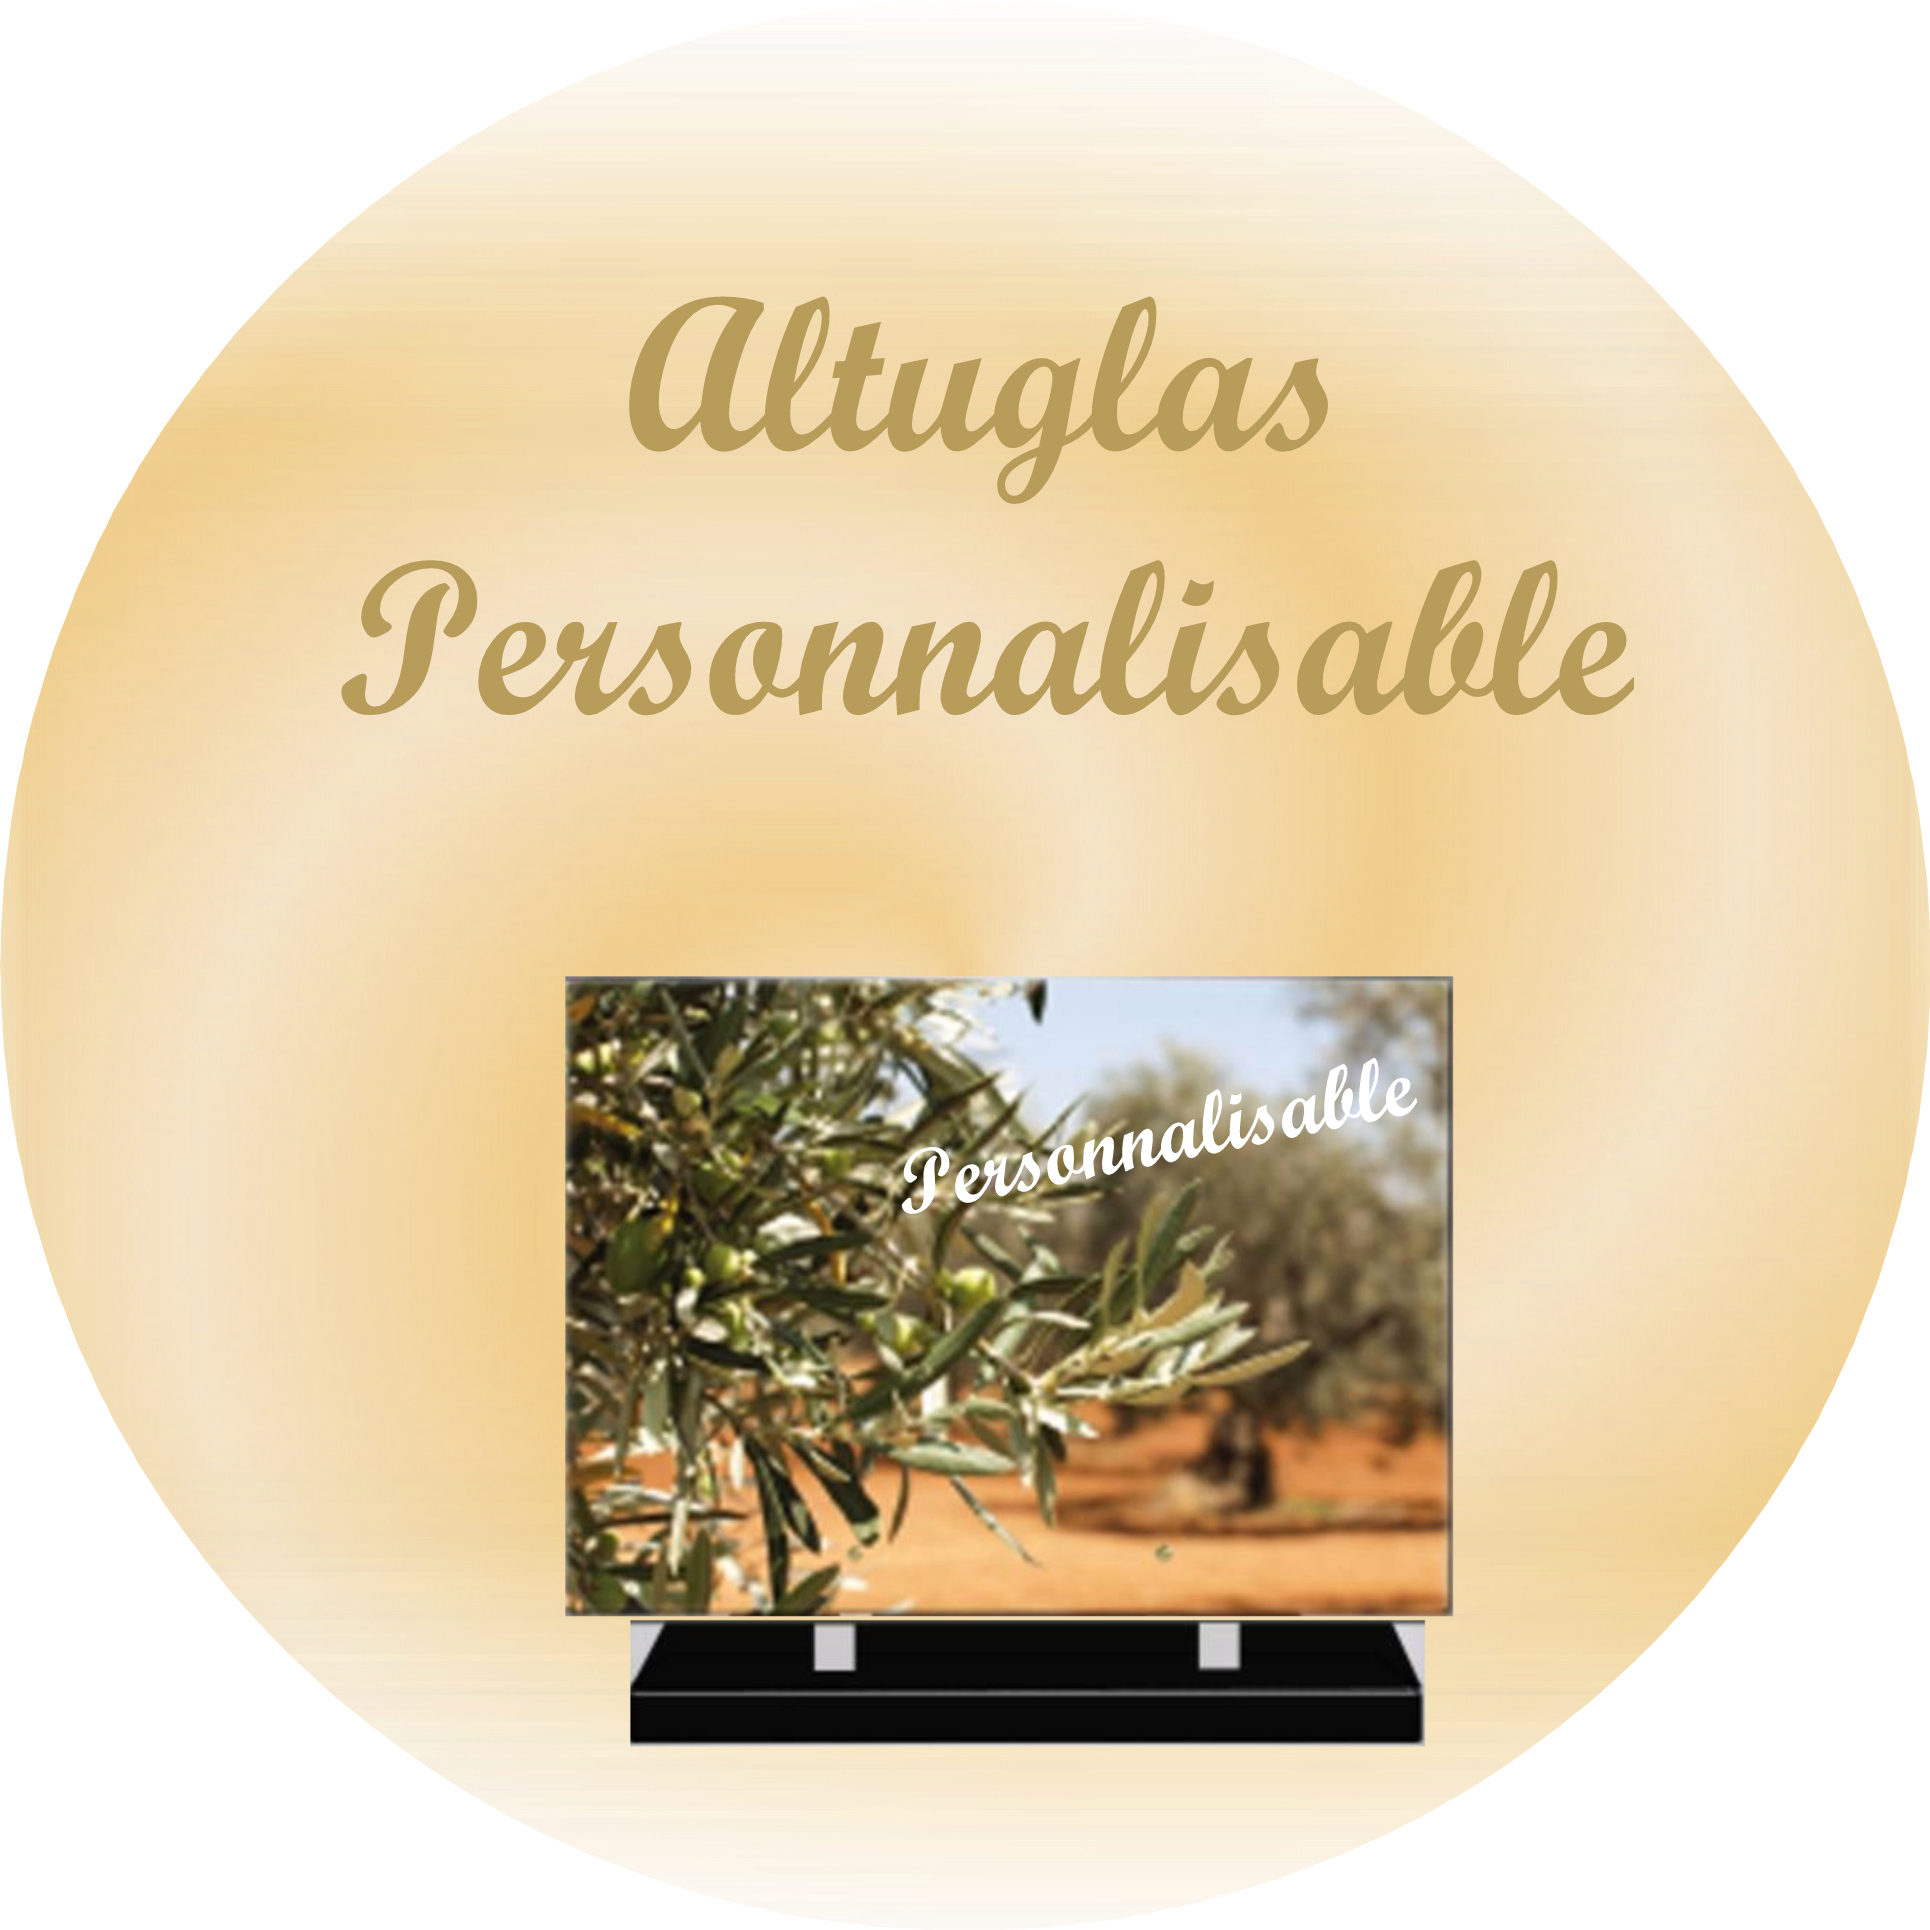 PLAQUES FUNERAIRES MODERNES PERSONNALISABLES RECTANGLE SEPT-FORGES